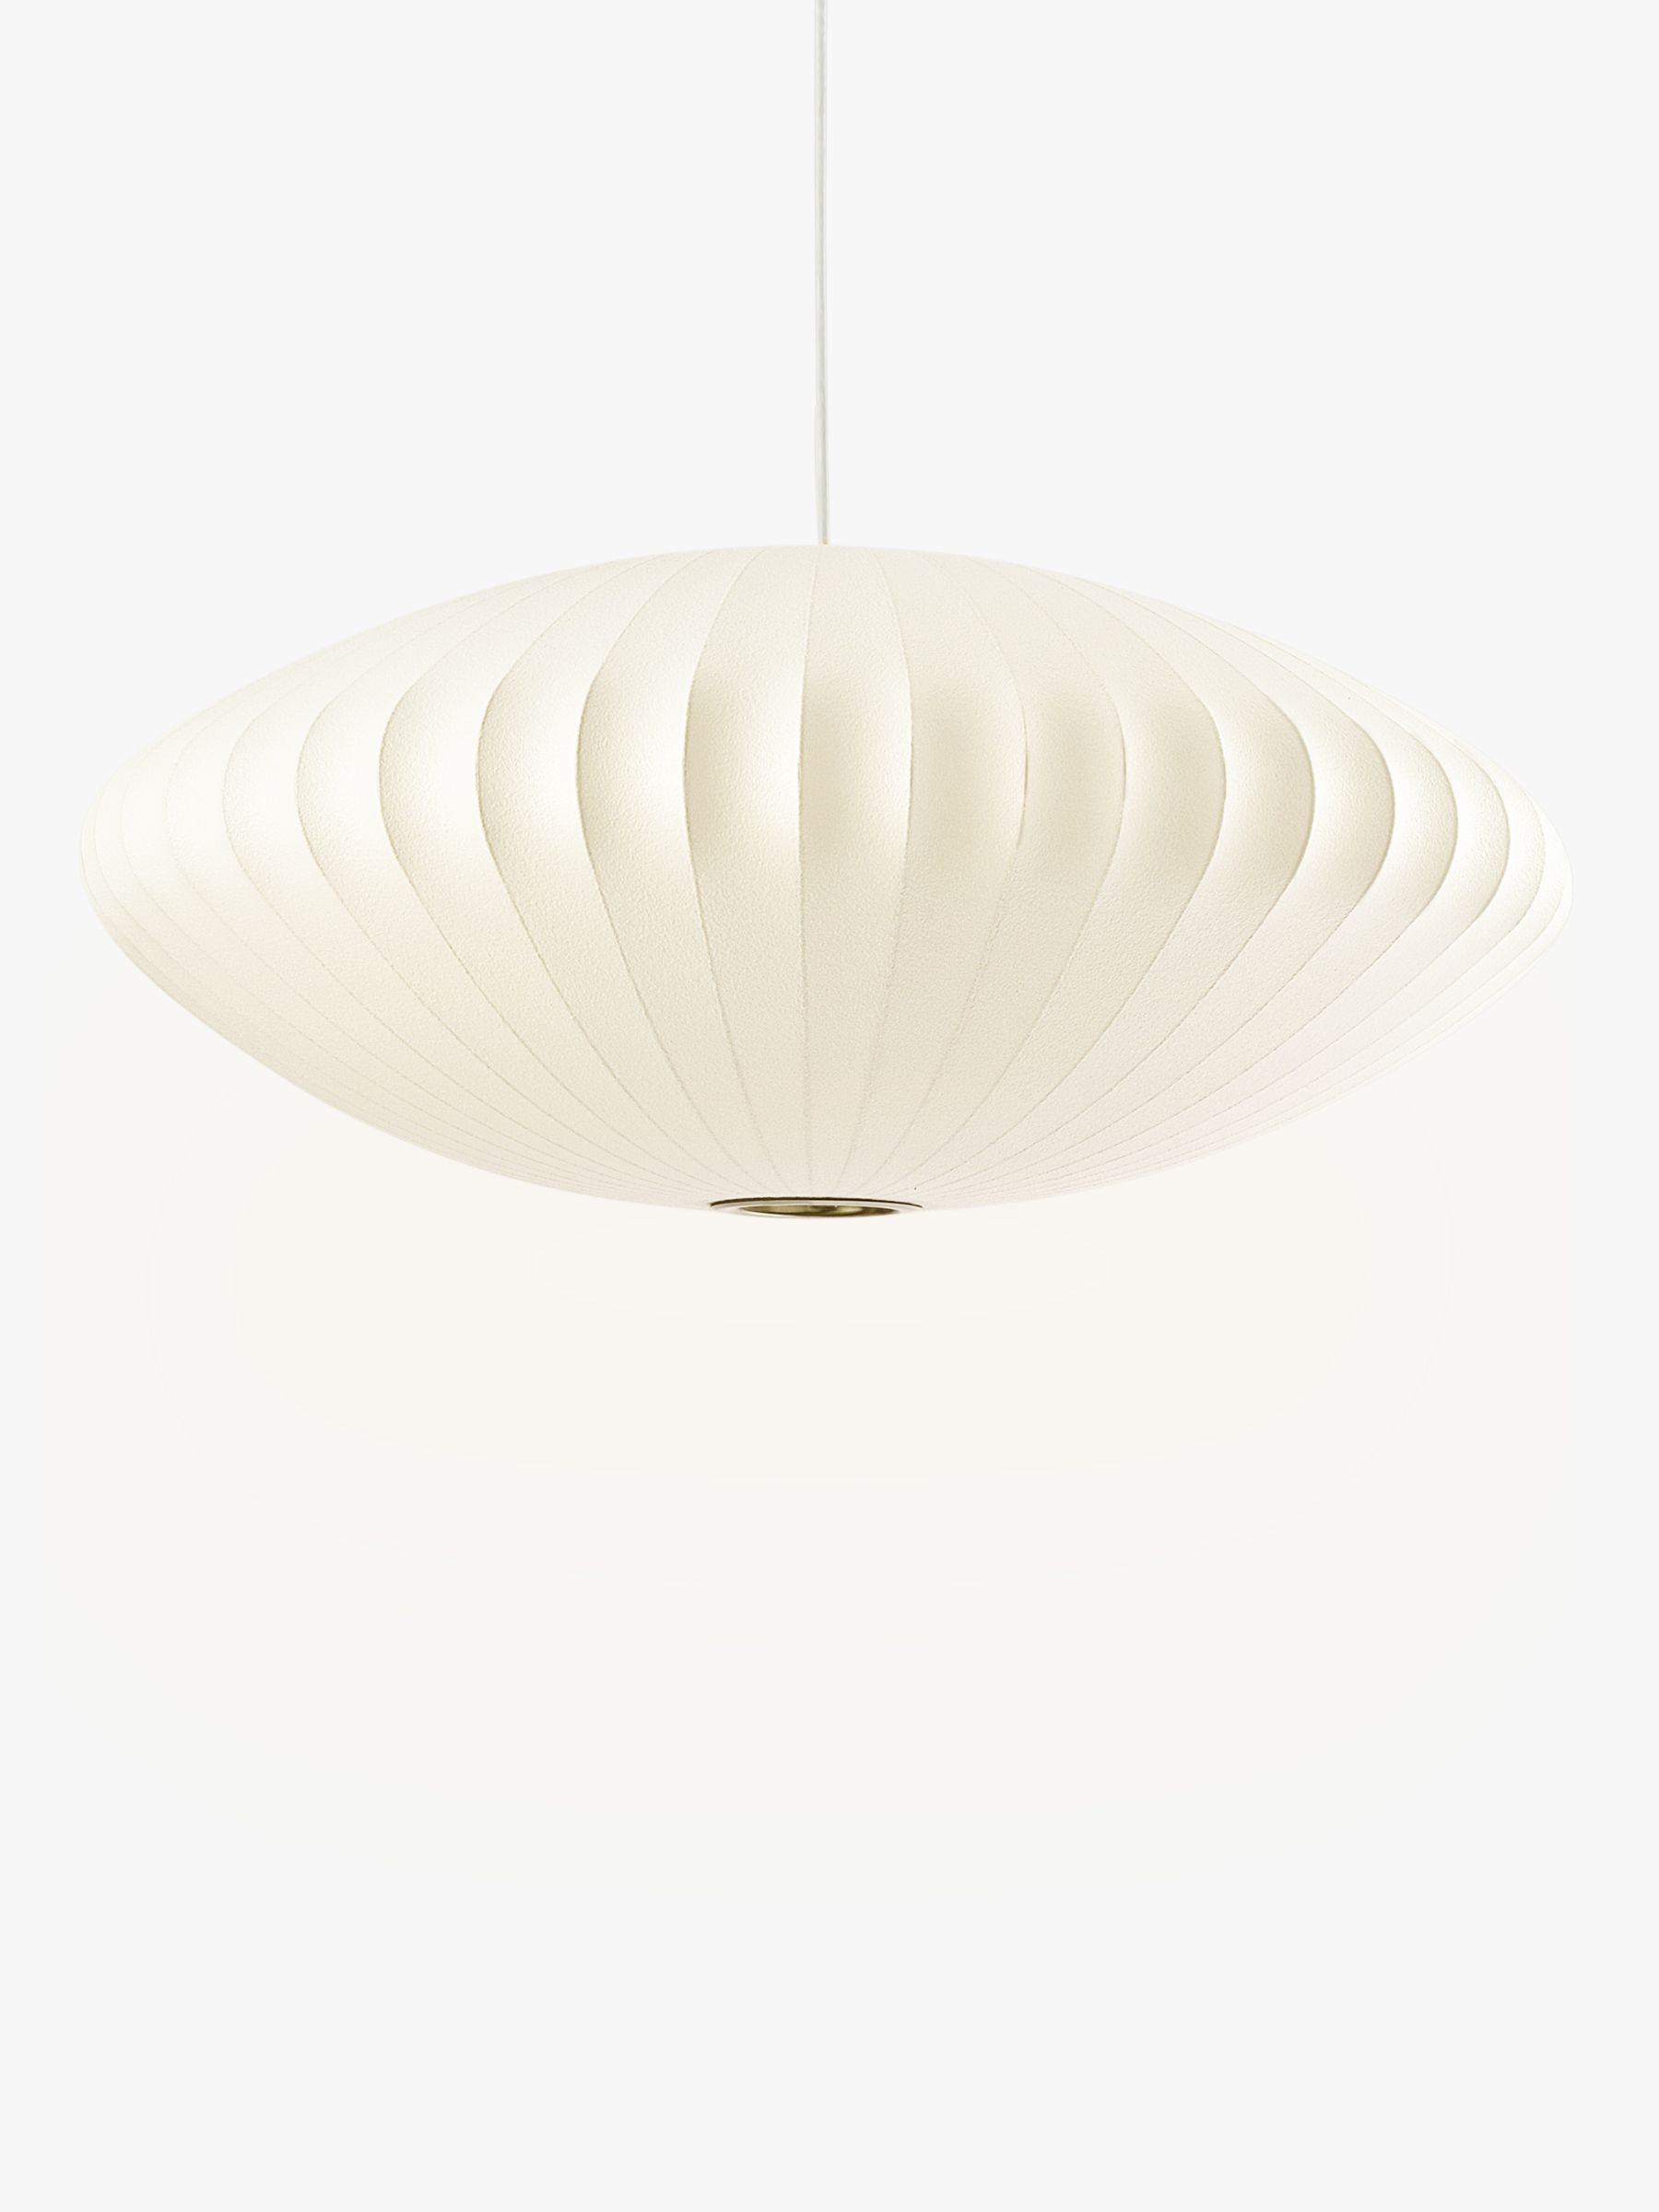 George Nelson George Nelson Bubble Saucer Ceiling Light, Large